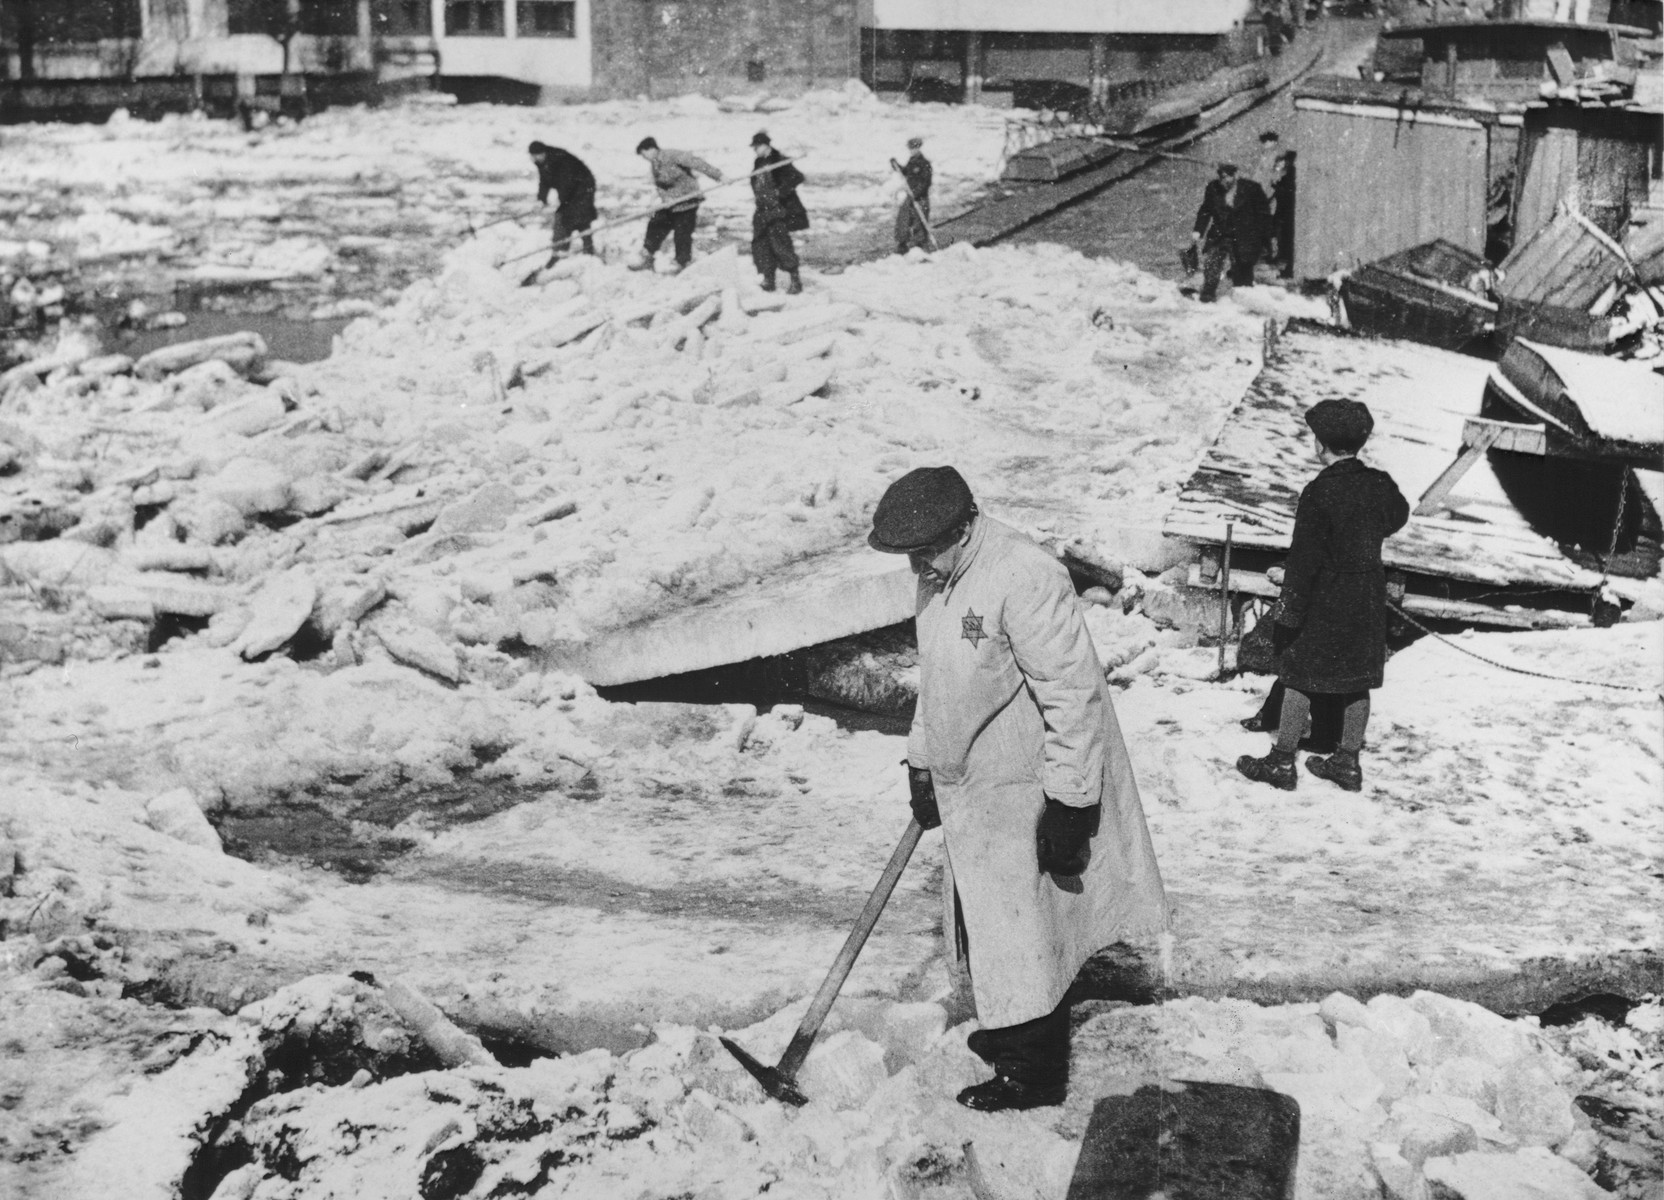 Czech Jews at forced labor clear ice in the center of Prague.